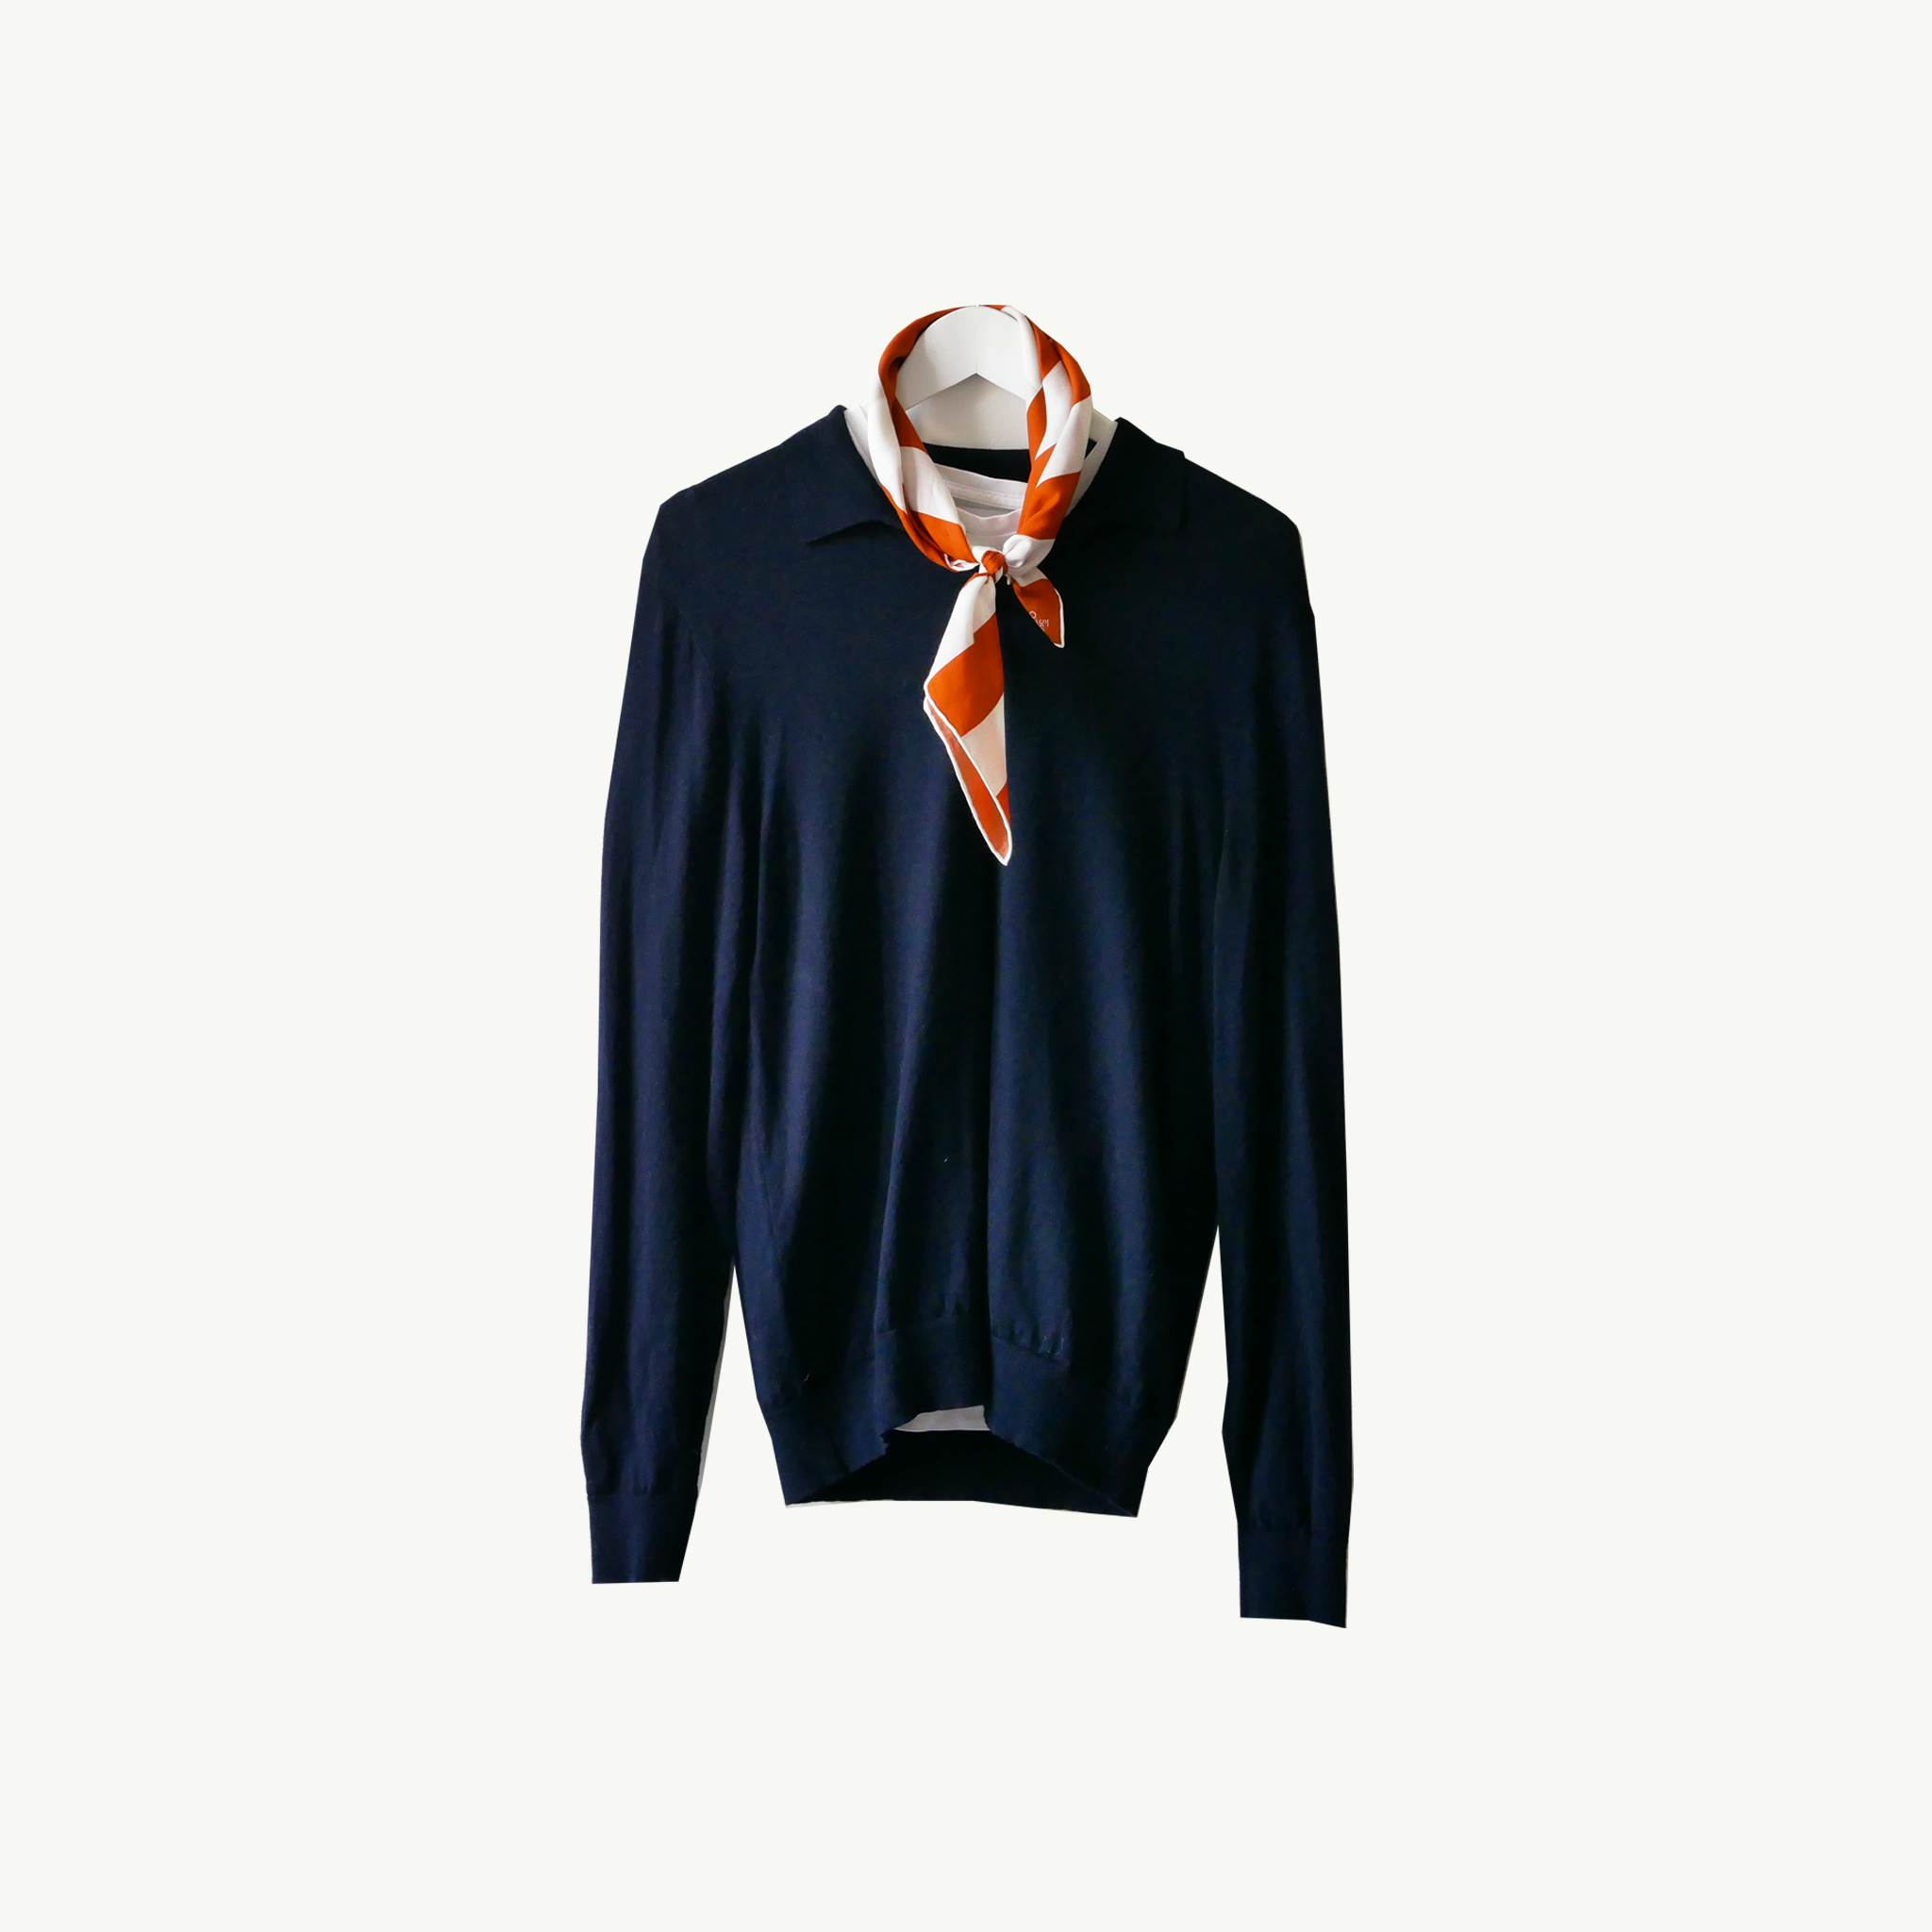 La Posta Vecchia, 16h23 handcrafted scarf worn on a navy cashmere polo sweater over a white tee in A Day In The Life...Part III by Les Belles Heures